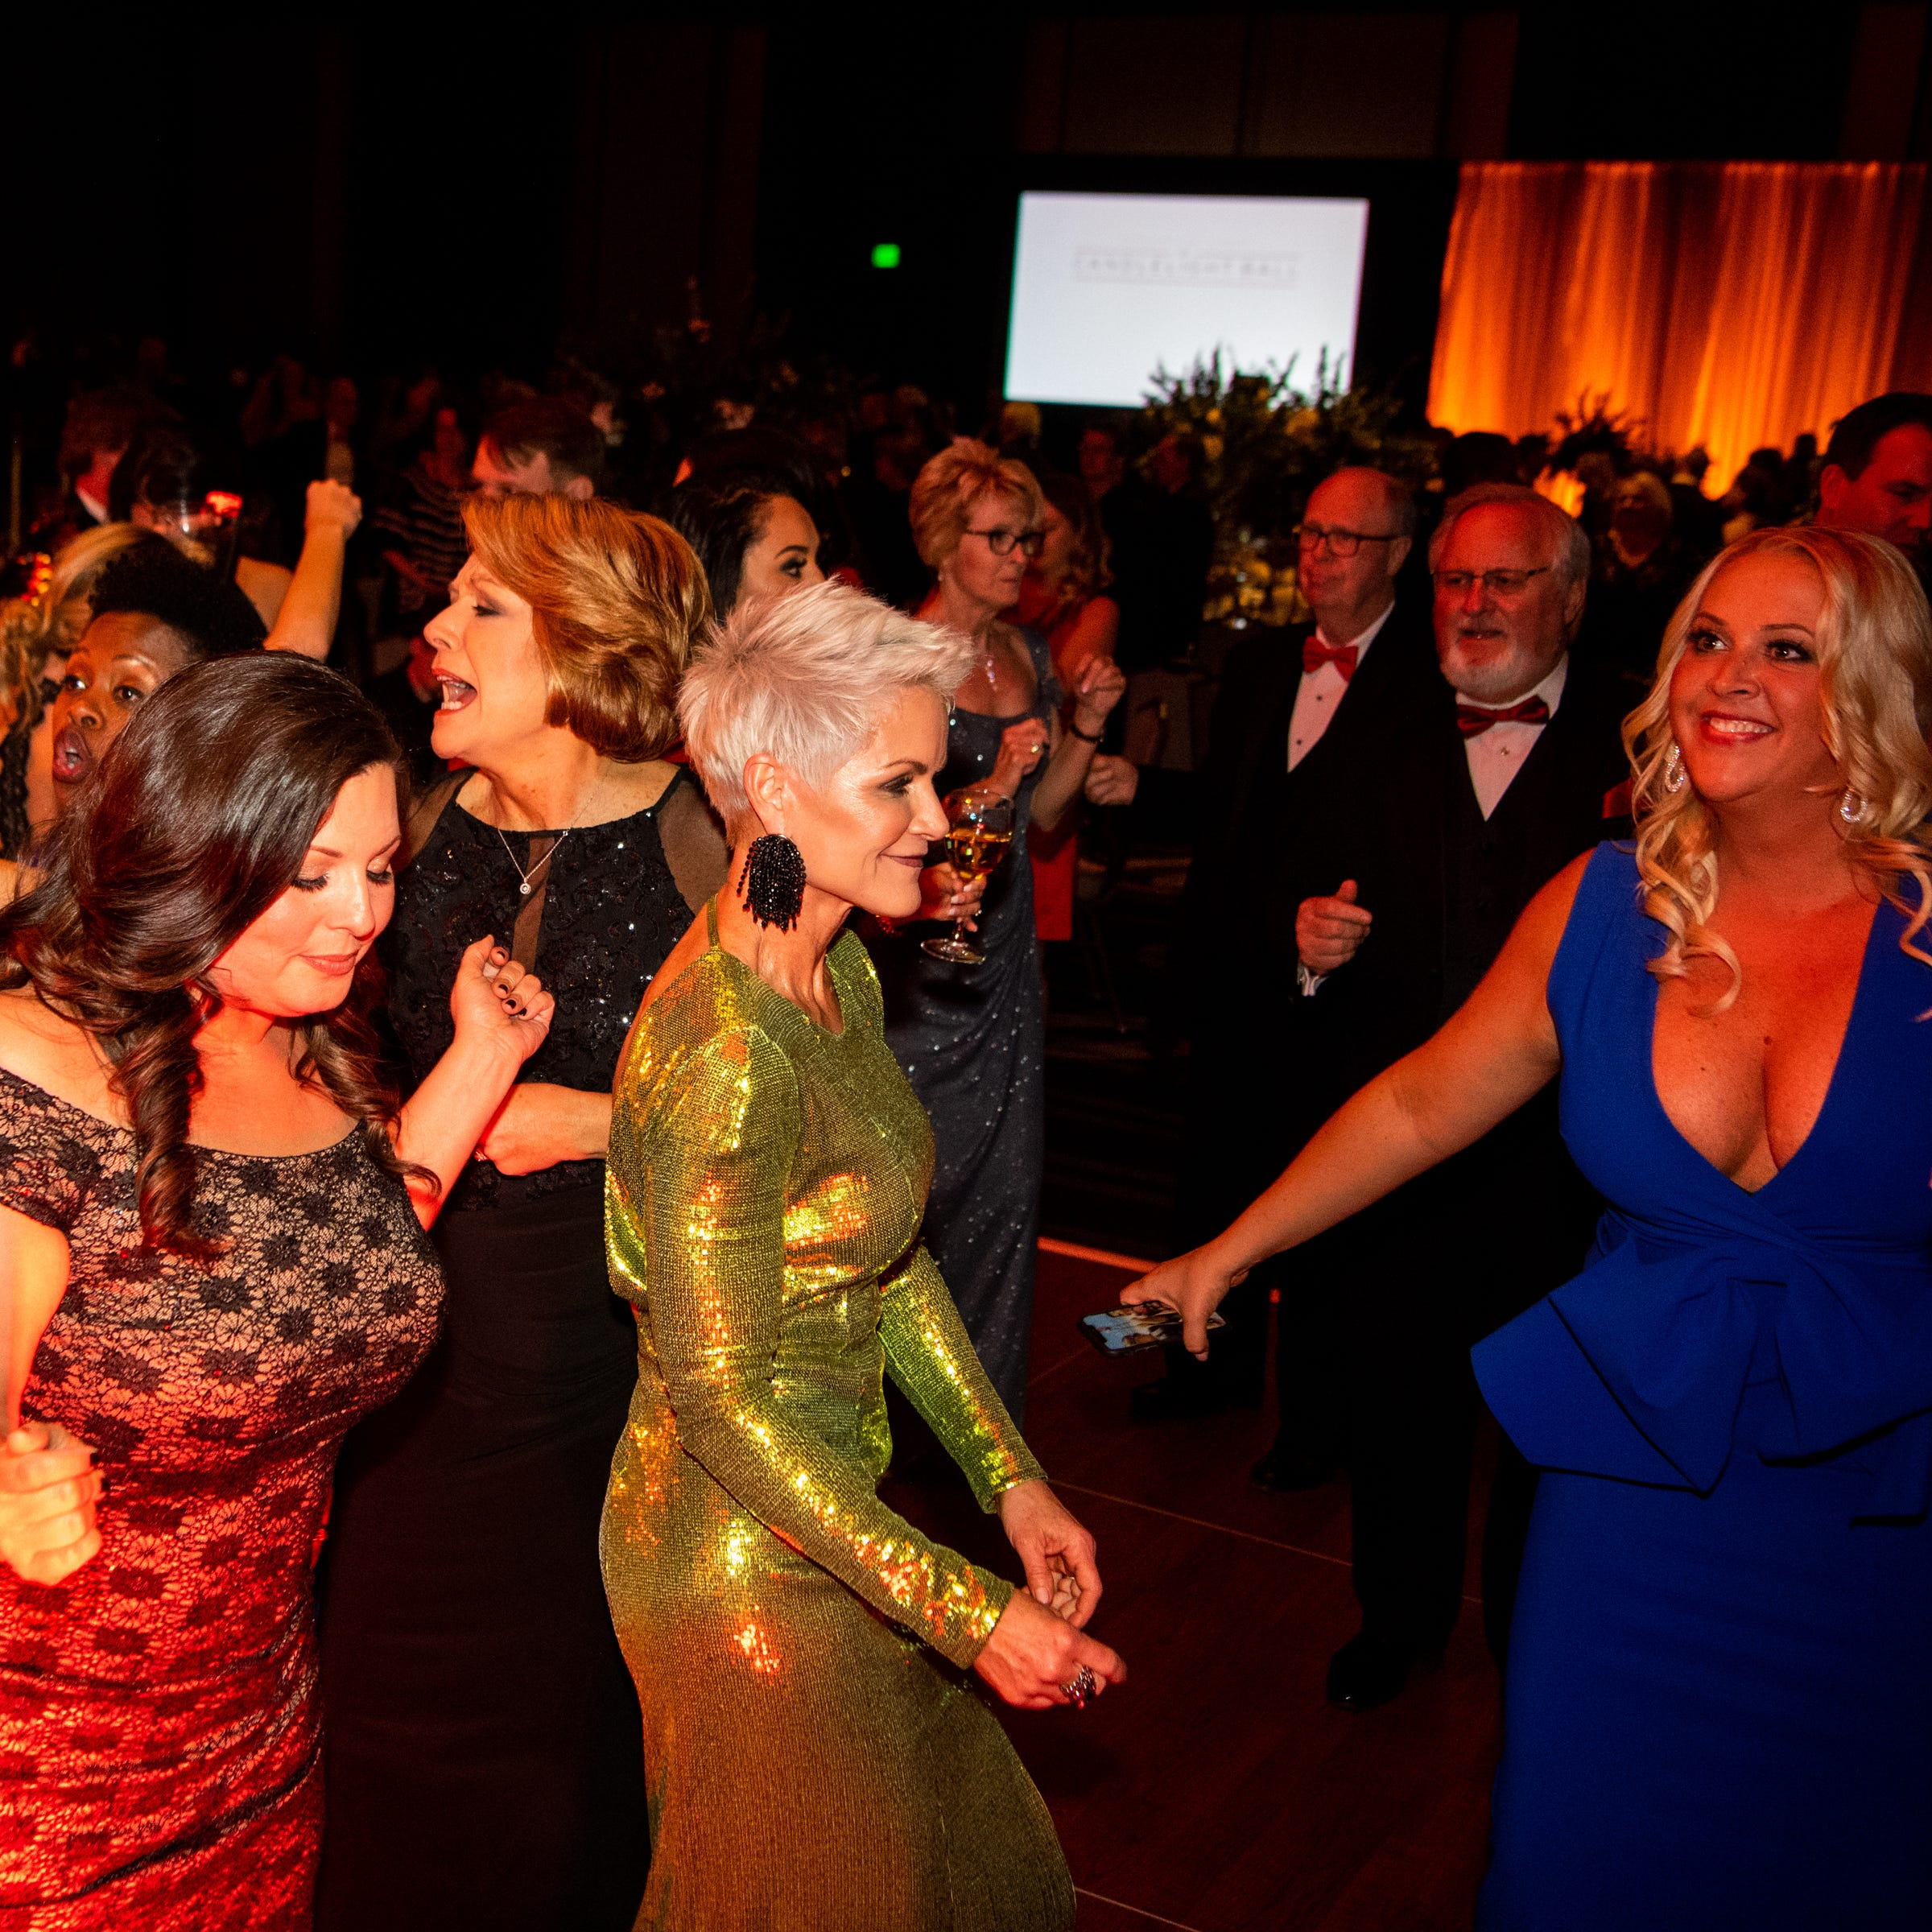 Candlelight Ball: What they wore, from ball gowns to sparkles and lace